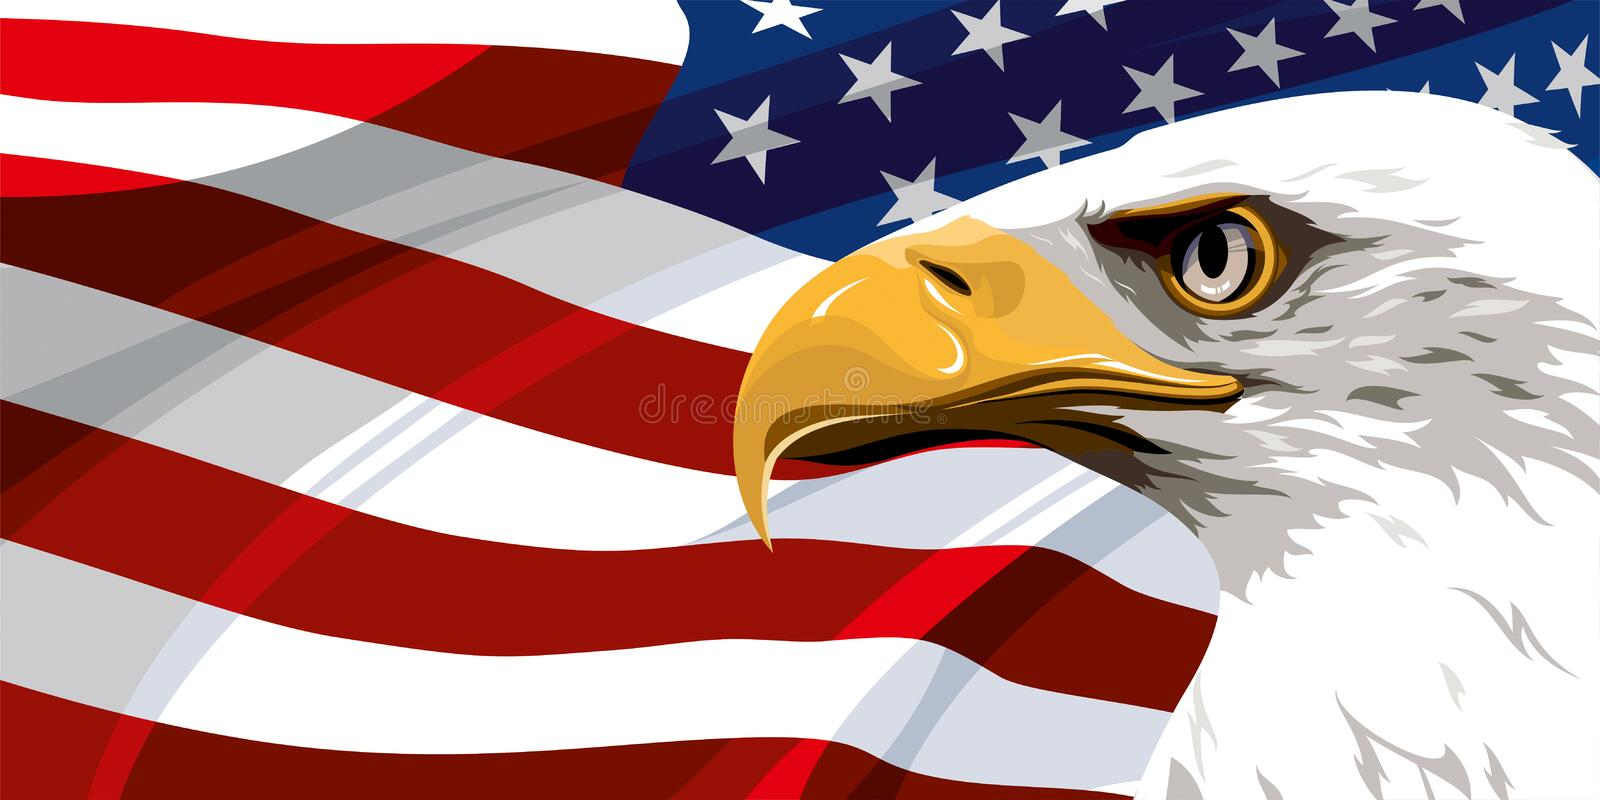 The National Symbol Of The Usa Stock Vector